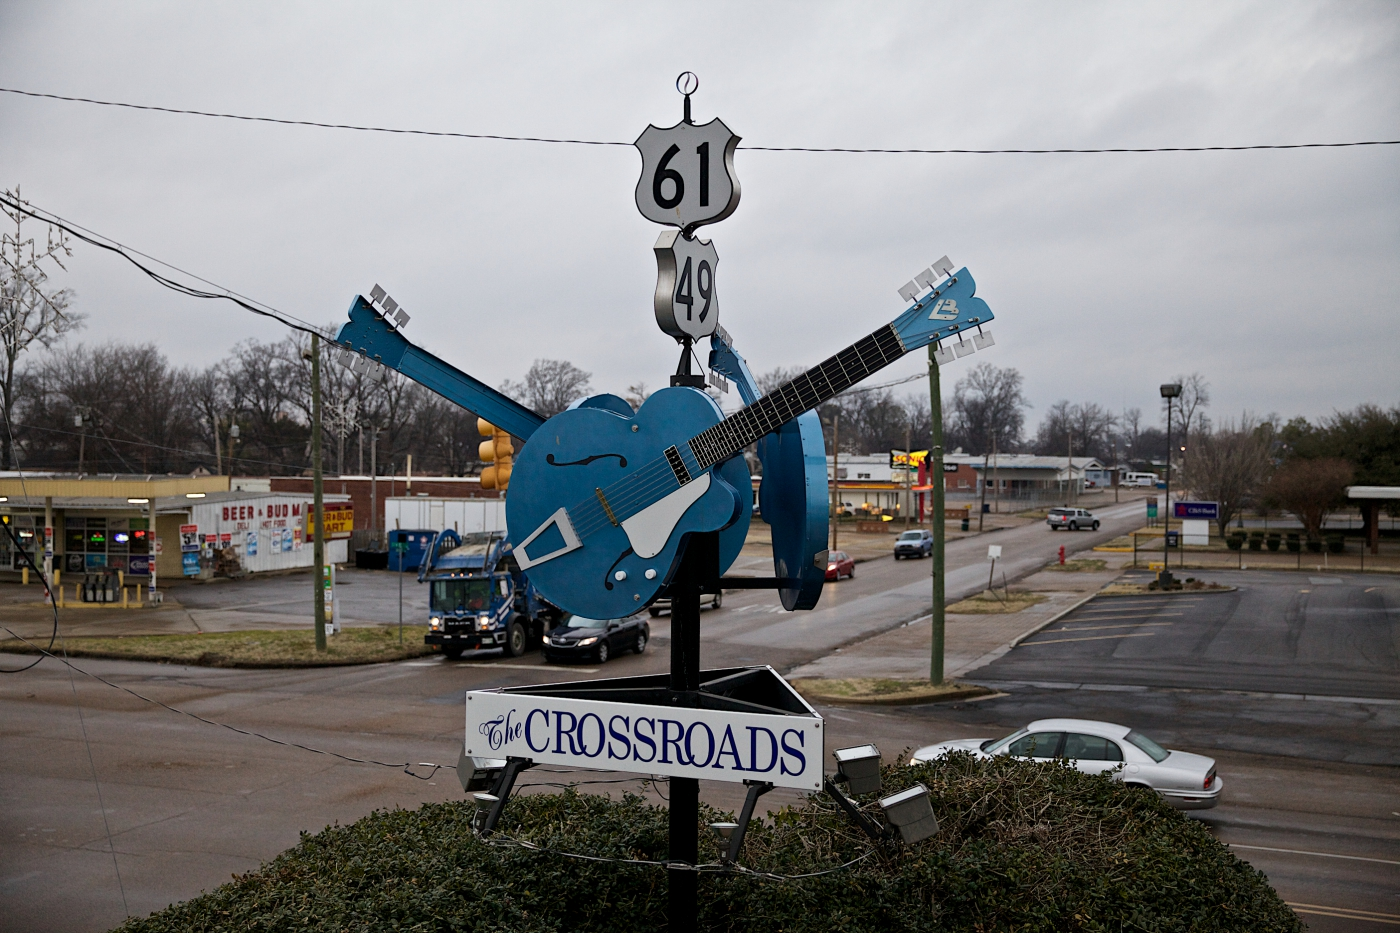 Where legends were made and Blues was born, the legendary Blues Crossroads at Hwy 61 and Hwy 49 in Clarksdale is a great photo op!